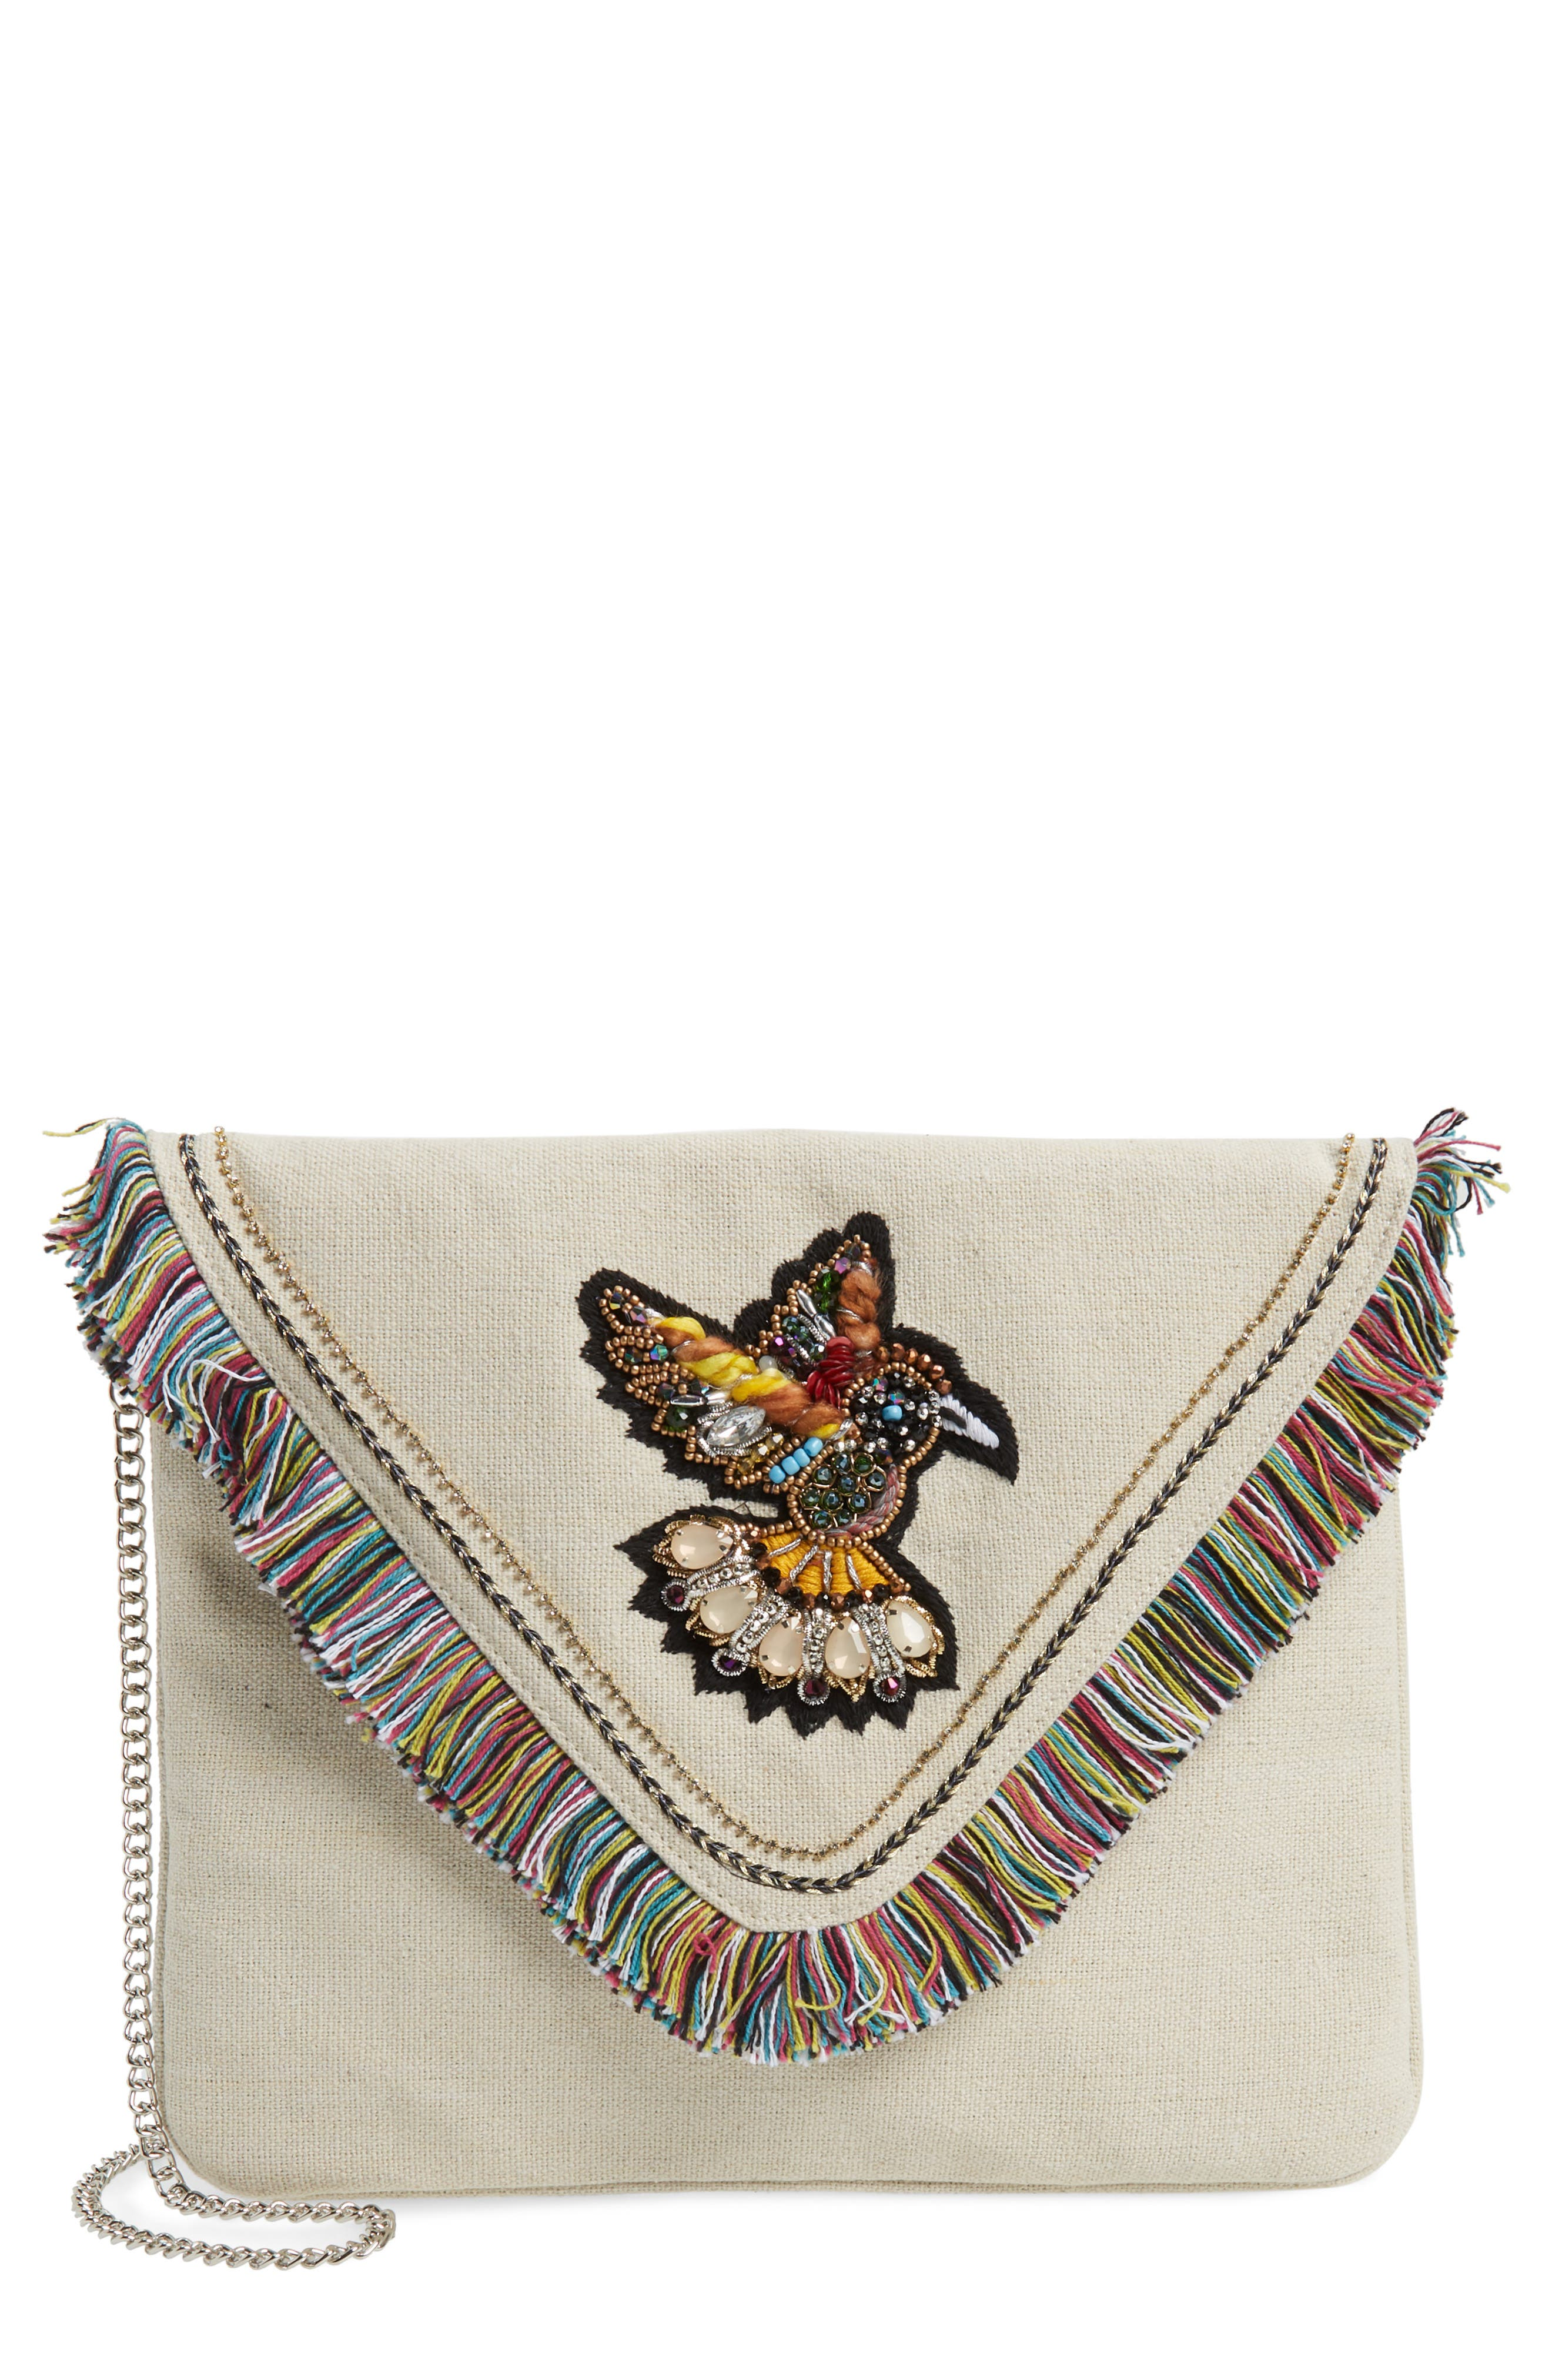 Steve Madden Bird Appliqué Oversize Envelope Clutch